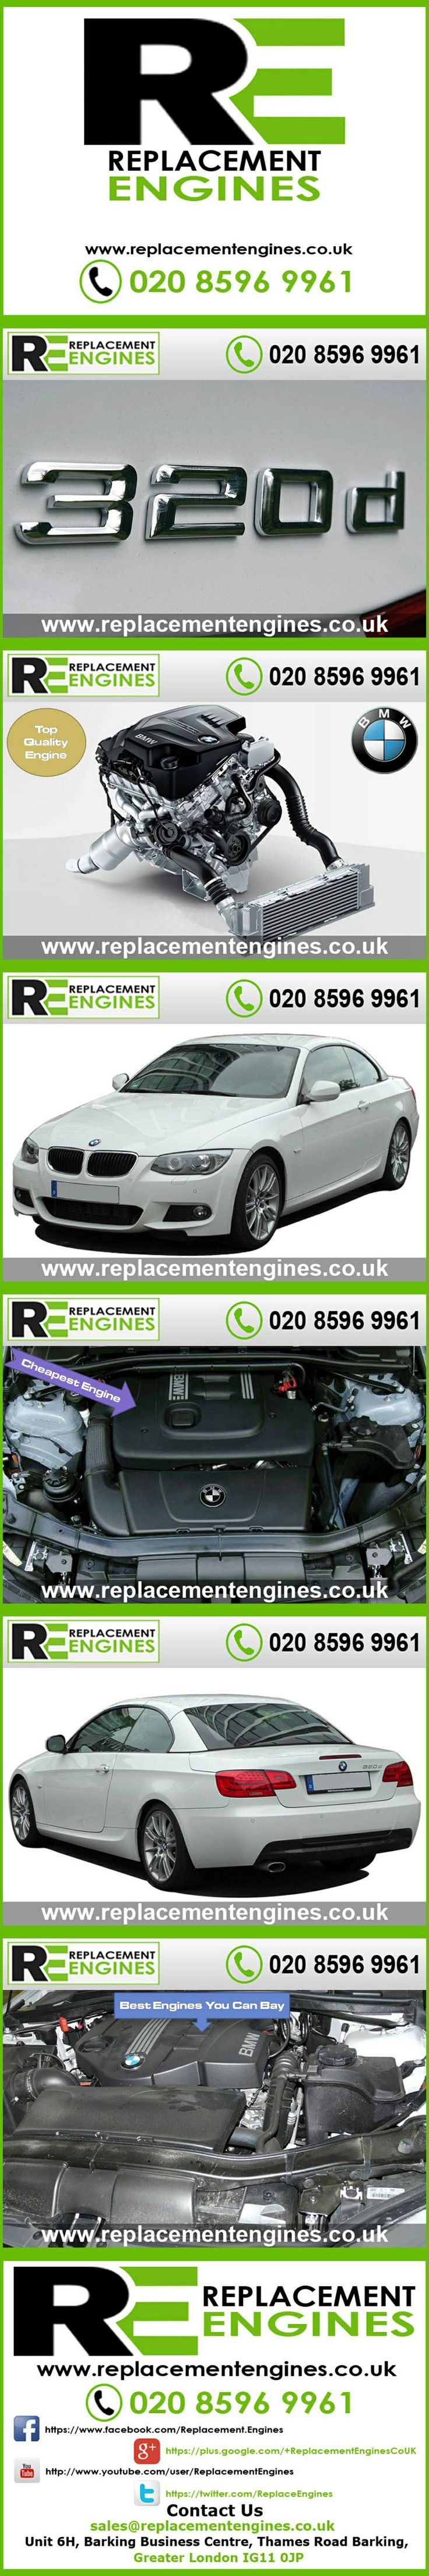 BMW 320d engines for sale at the cheapest prices, we have low mileage used & reconditioned engines in stock now, ready to be delivered to anywhere in the UK or overseas, visit Replacement Engines website here.